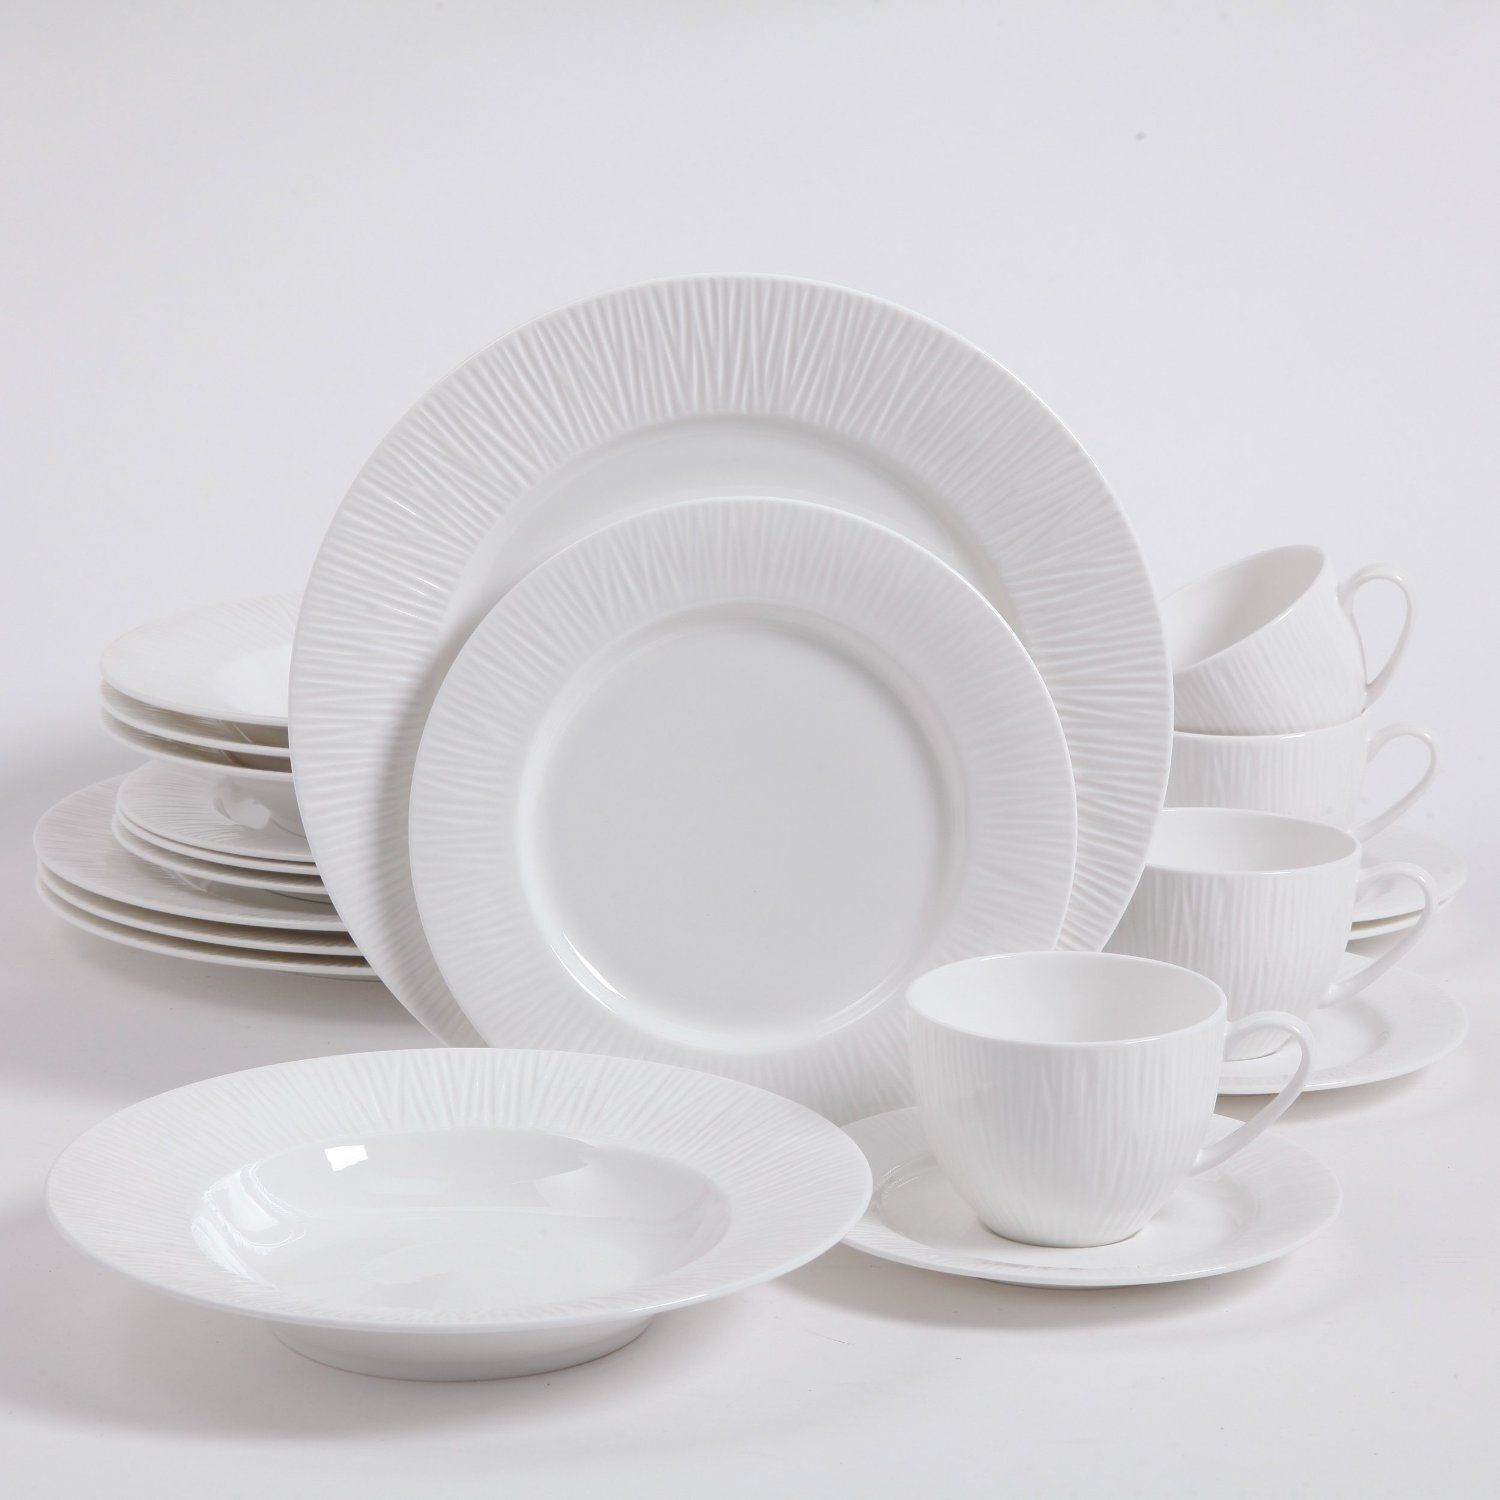 Amazon.com Gibson Elite Sandridge 20 Piece Dinnerware Set Bone China Kitchen & Amazon.com: Gibson Elite Sandridge 20 Piece Dinnerware Set Bone ...